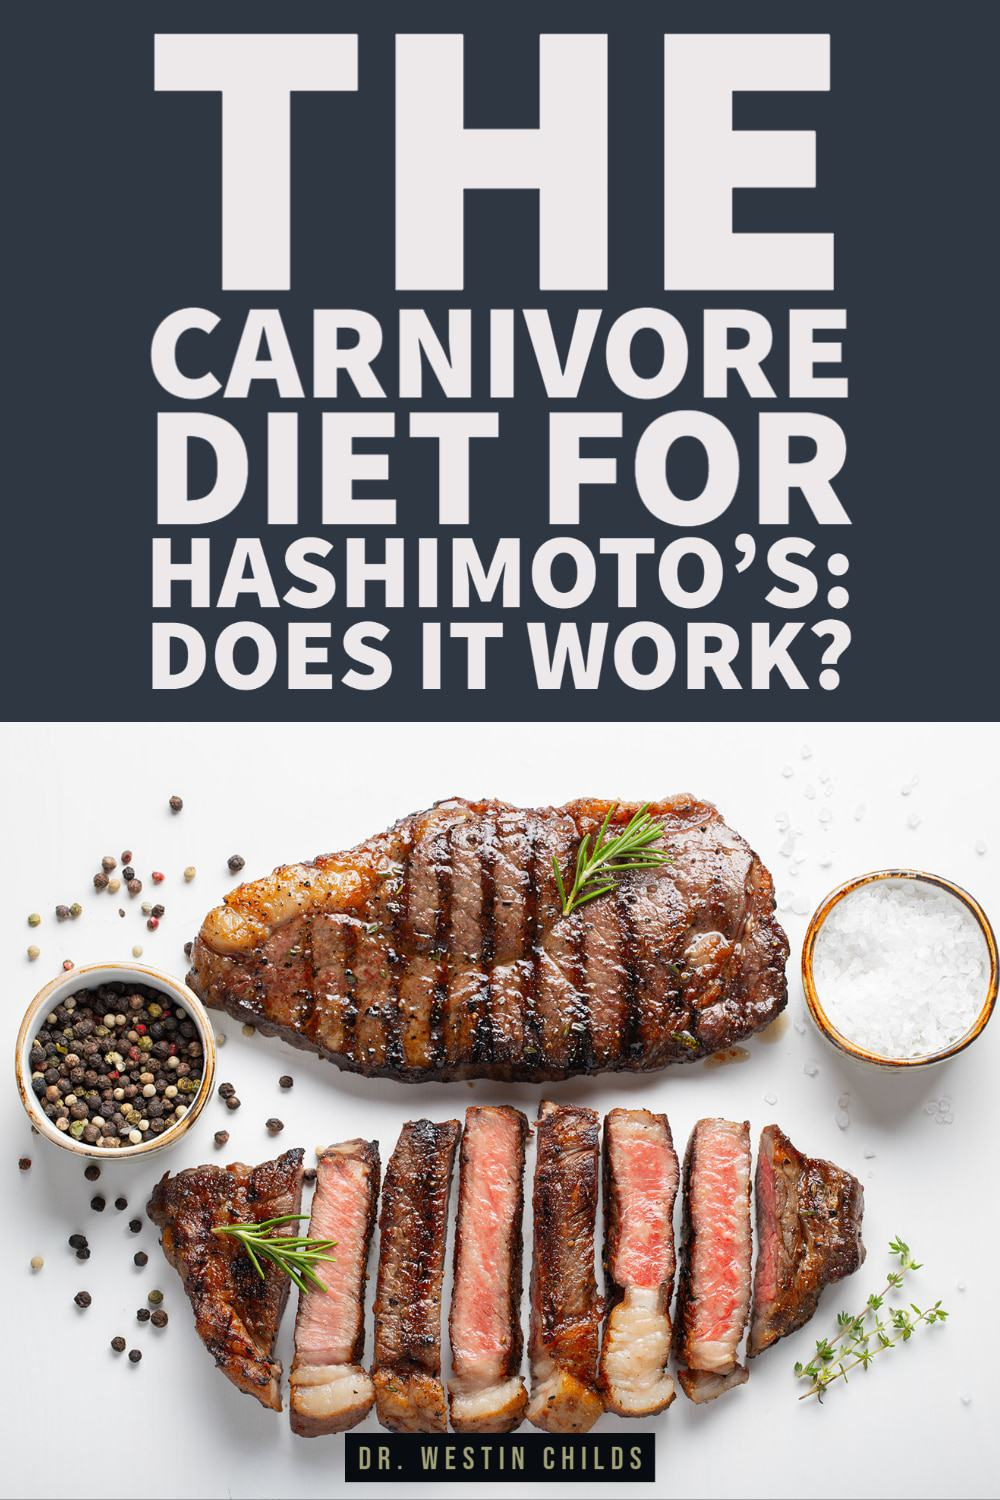 can the carnivore diet be used to treat hashimoto's?